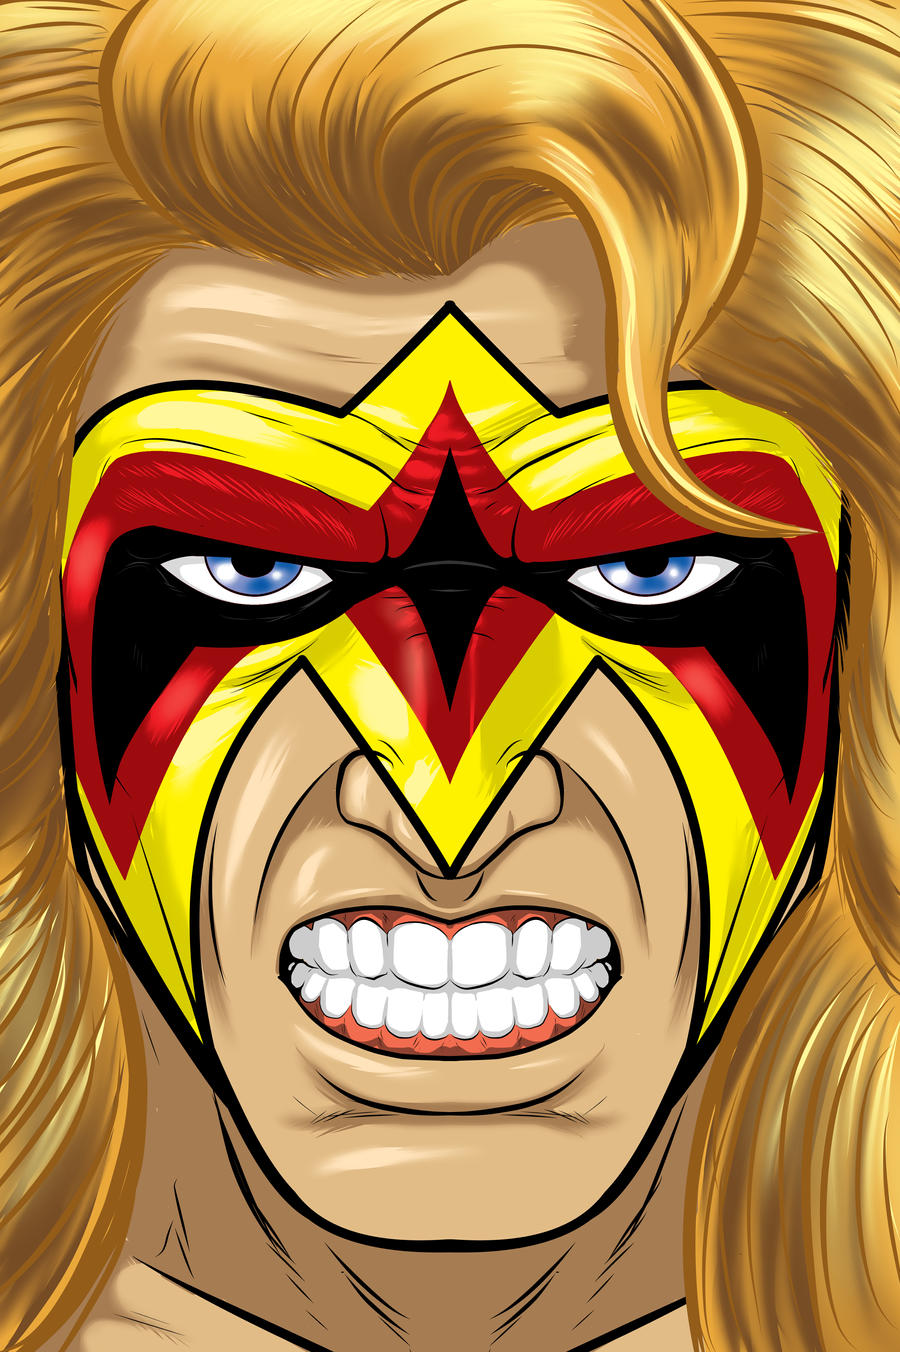 Ultimate Warrior by Thuddleston